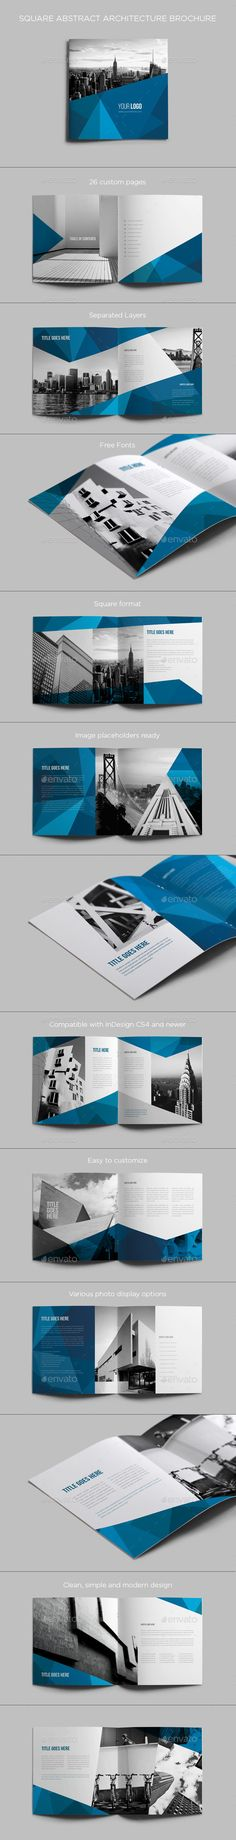 Square Abstract Architecture Brochure - Brochures Print Templates